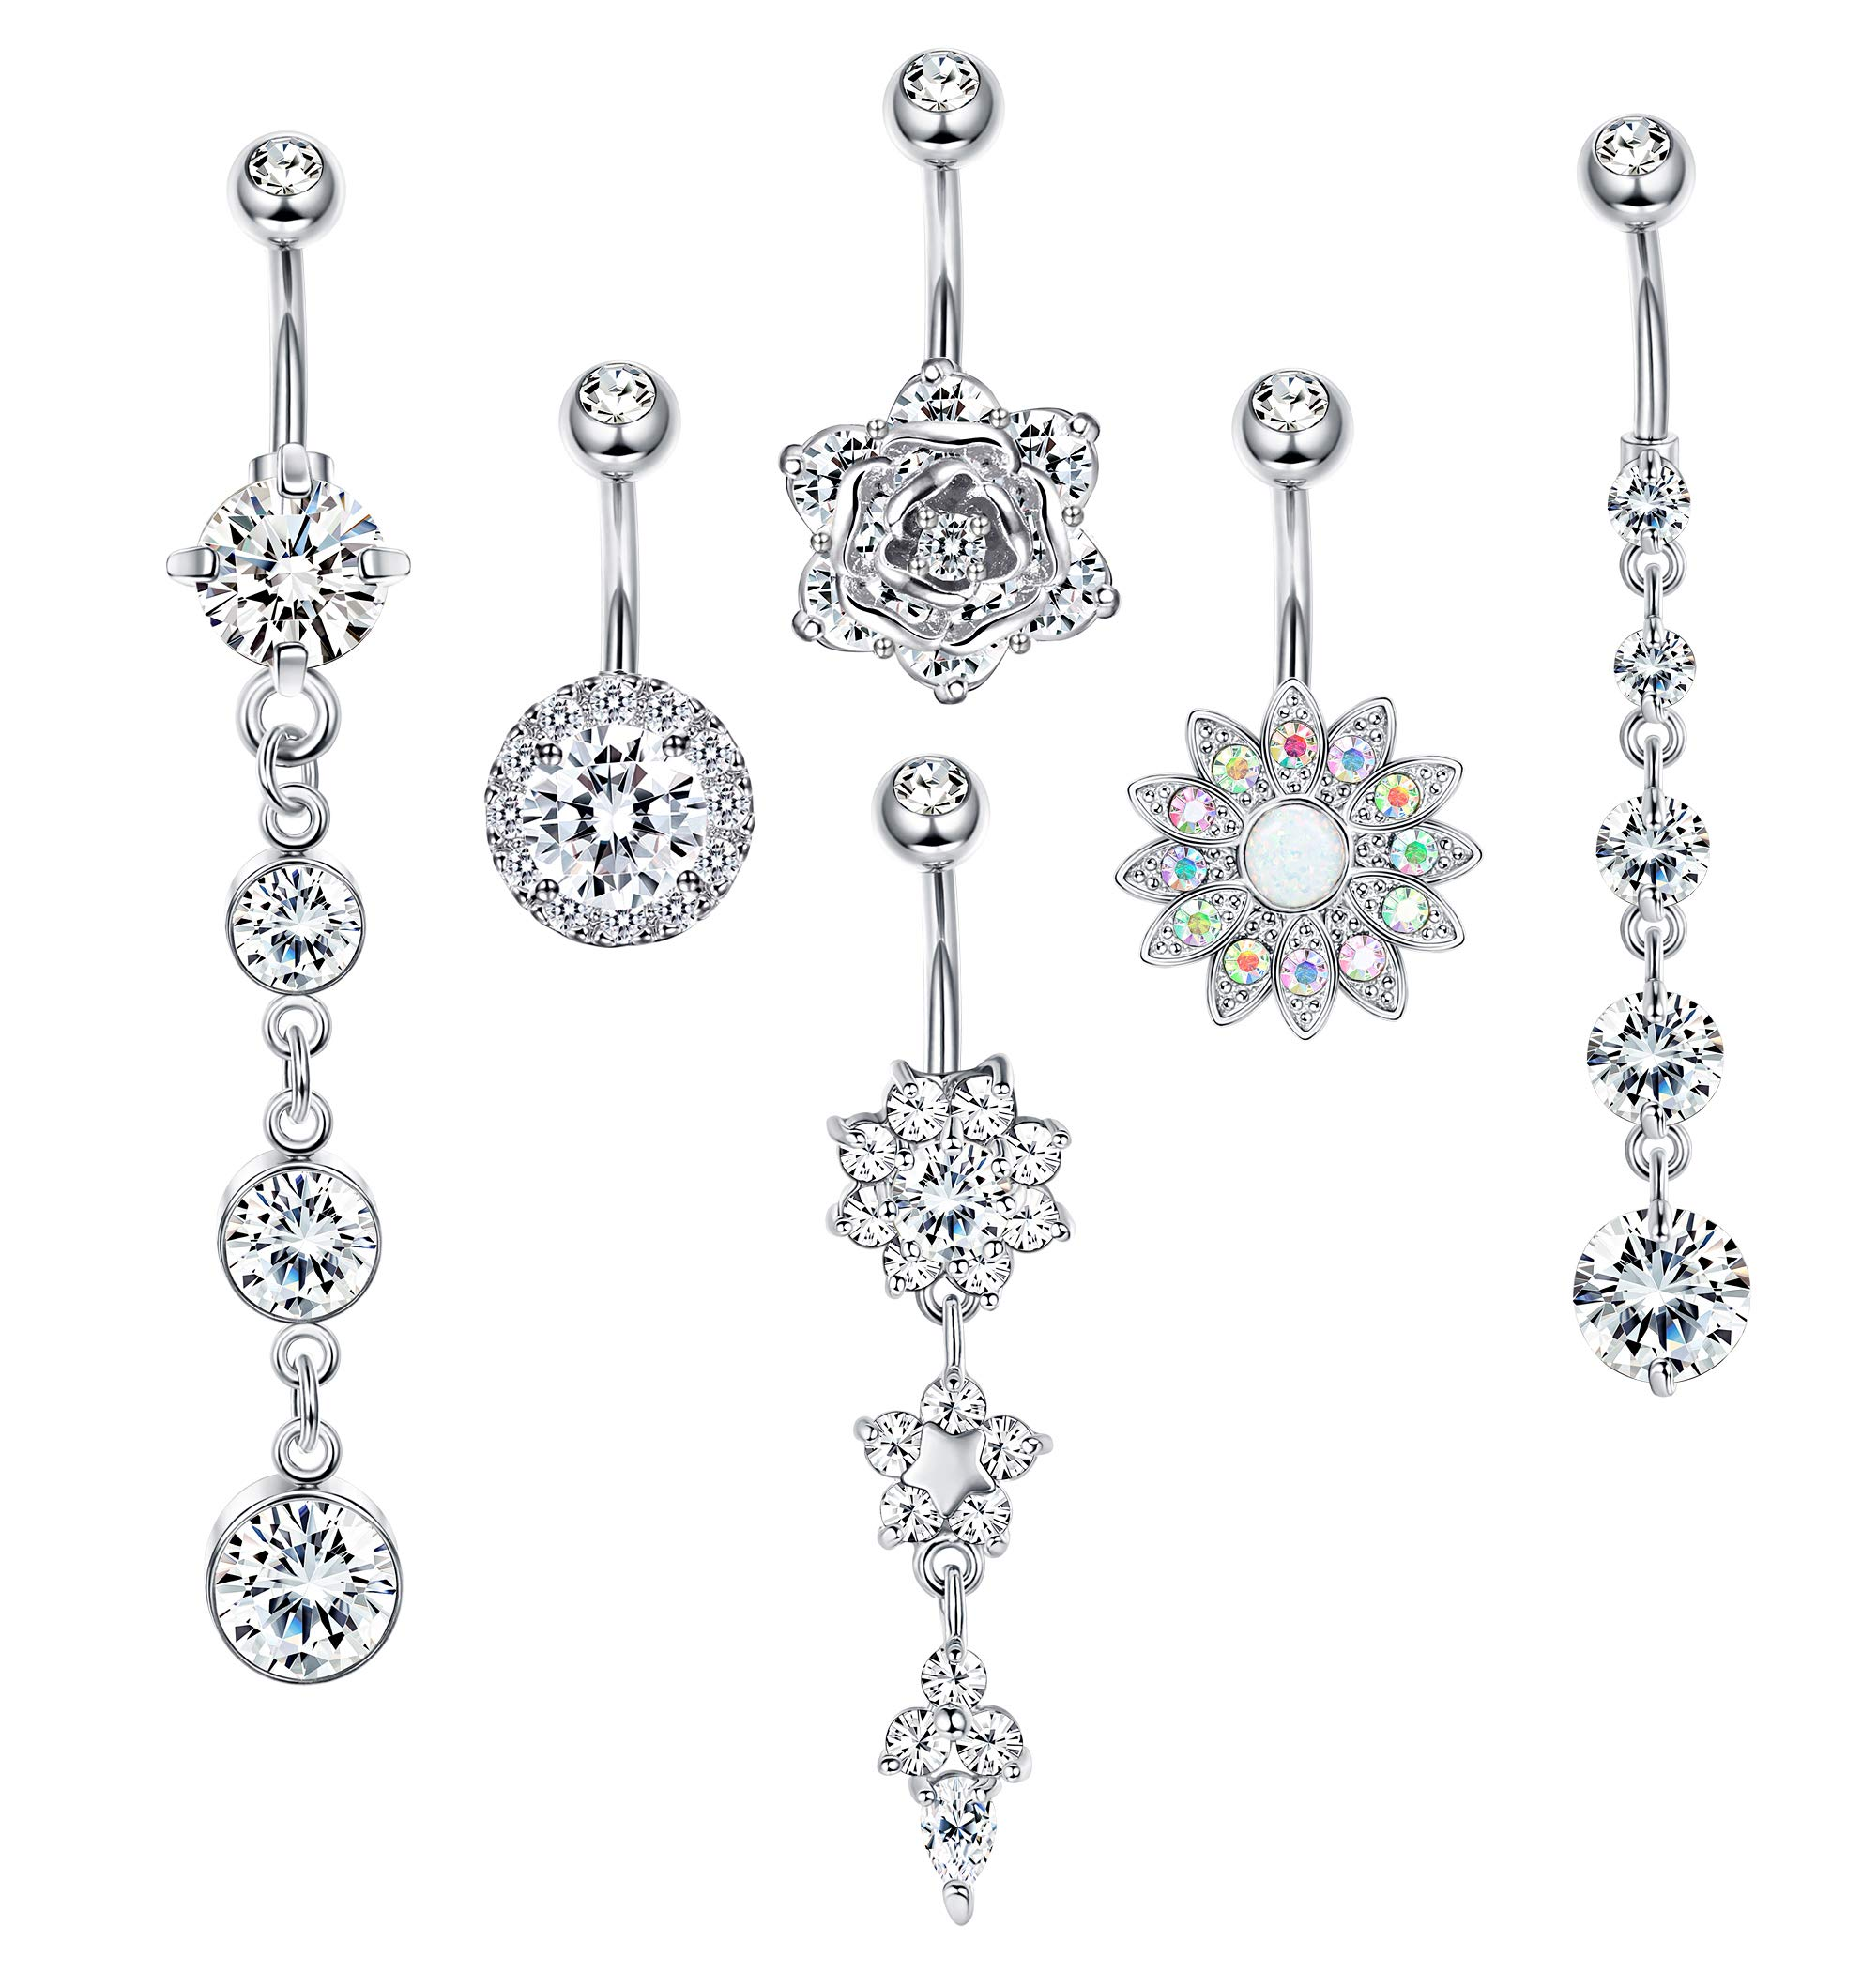 Jstyle 6 Pcs 14G Stainless Steel Belly Button Rings Barbell Navel Rings Bar Women CZ Flower Body Piercing Silver